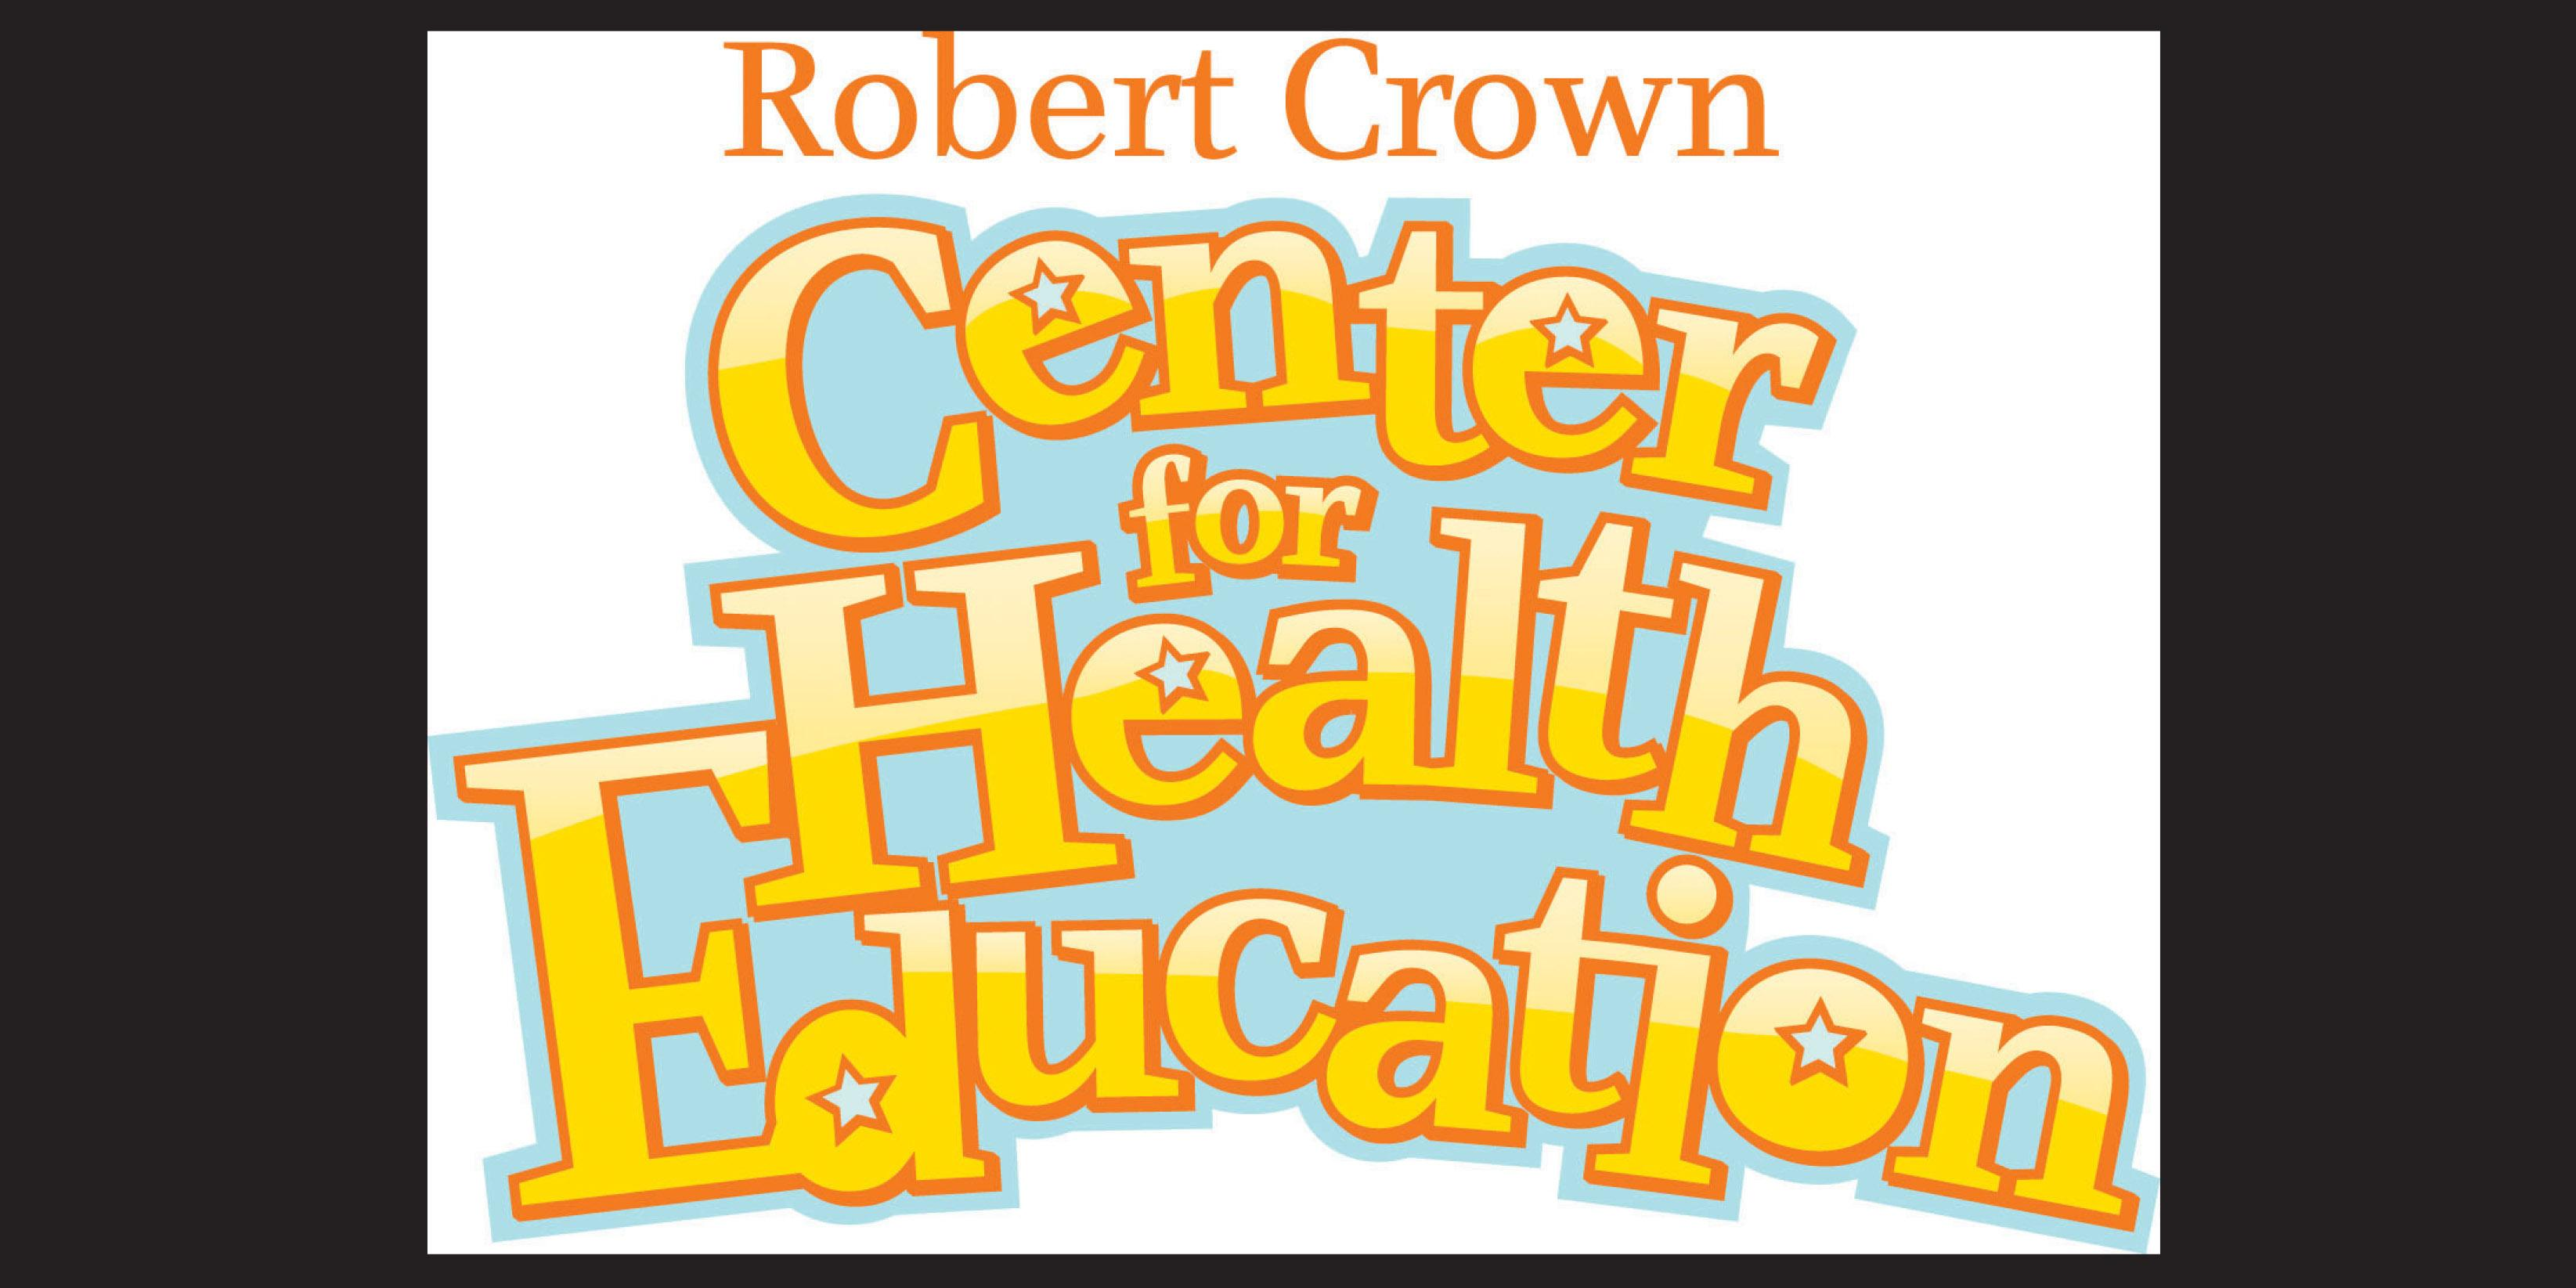 Robert Crown drug-abuse prevention program